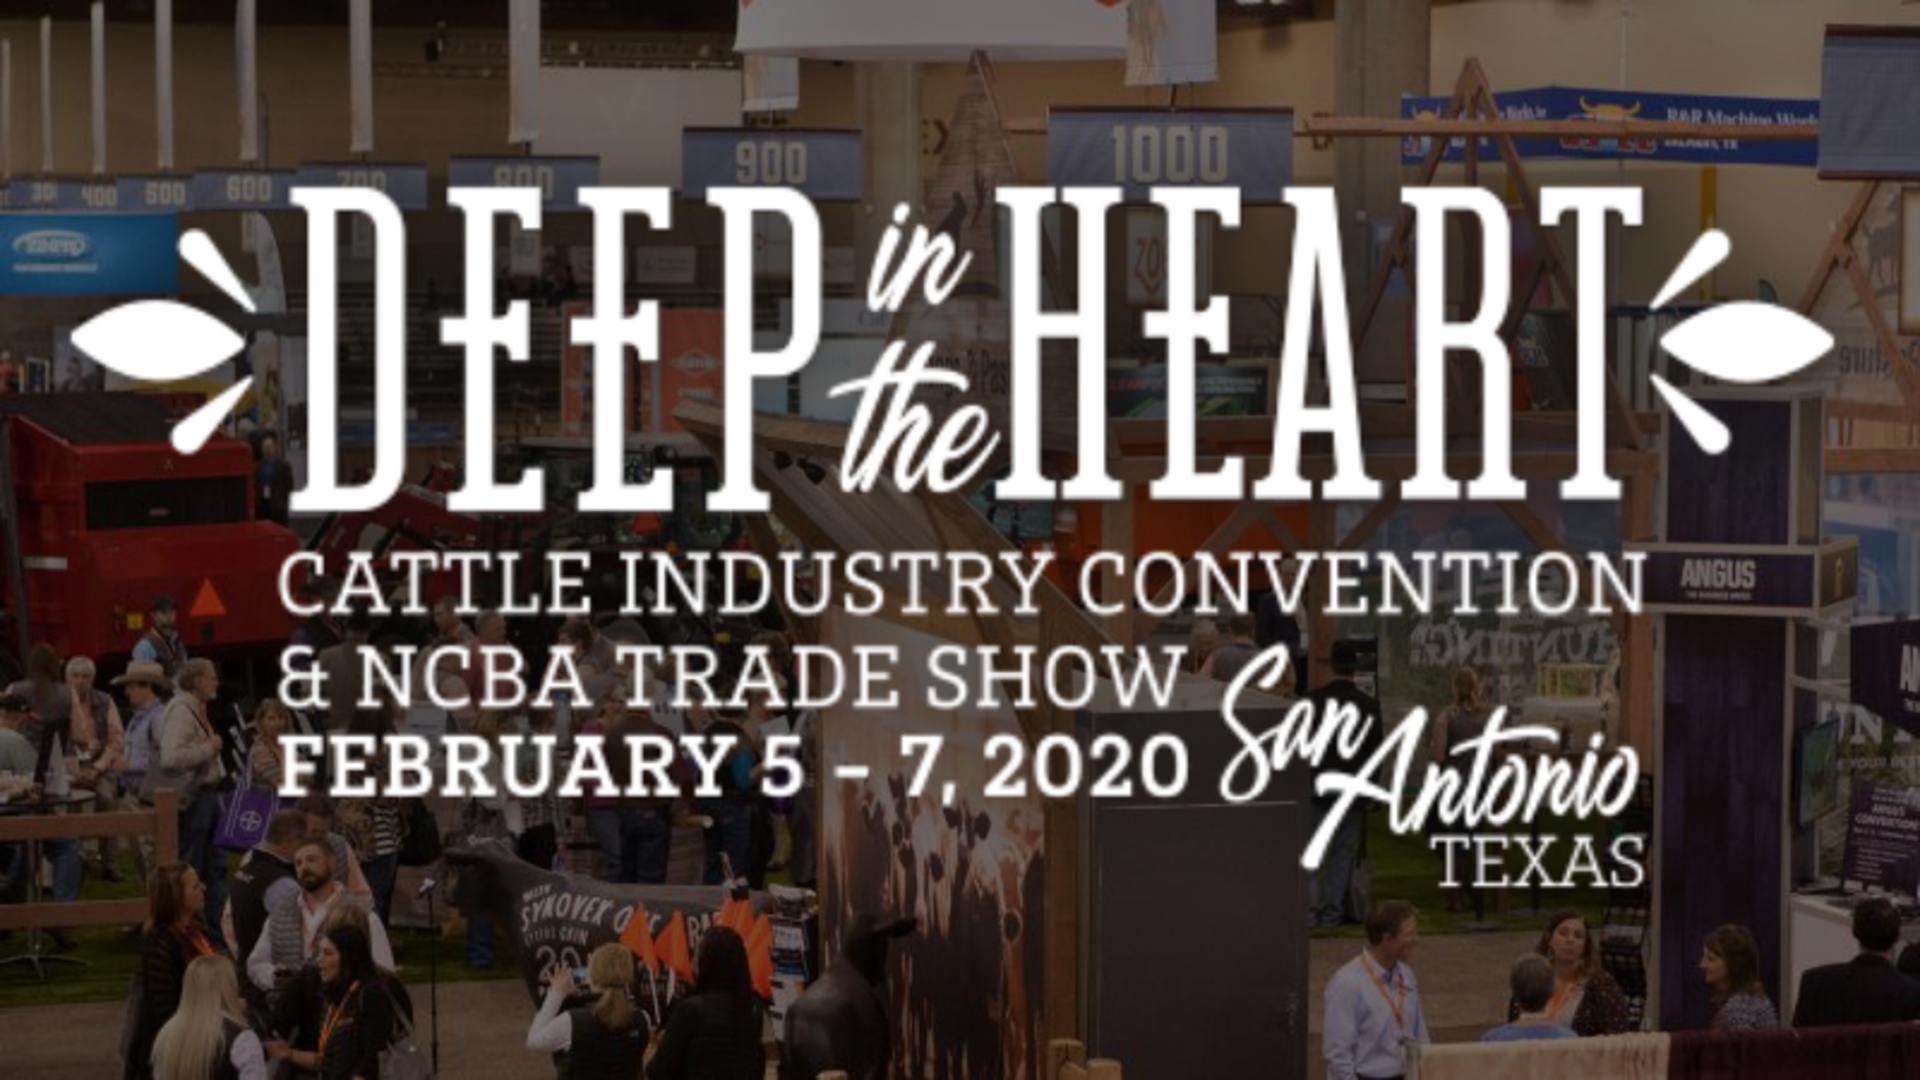 Thousands Gather in San Antonio for Annual Cattle Industry Convention and NCBA Trade Show